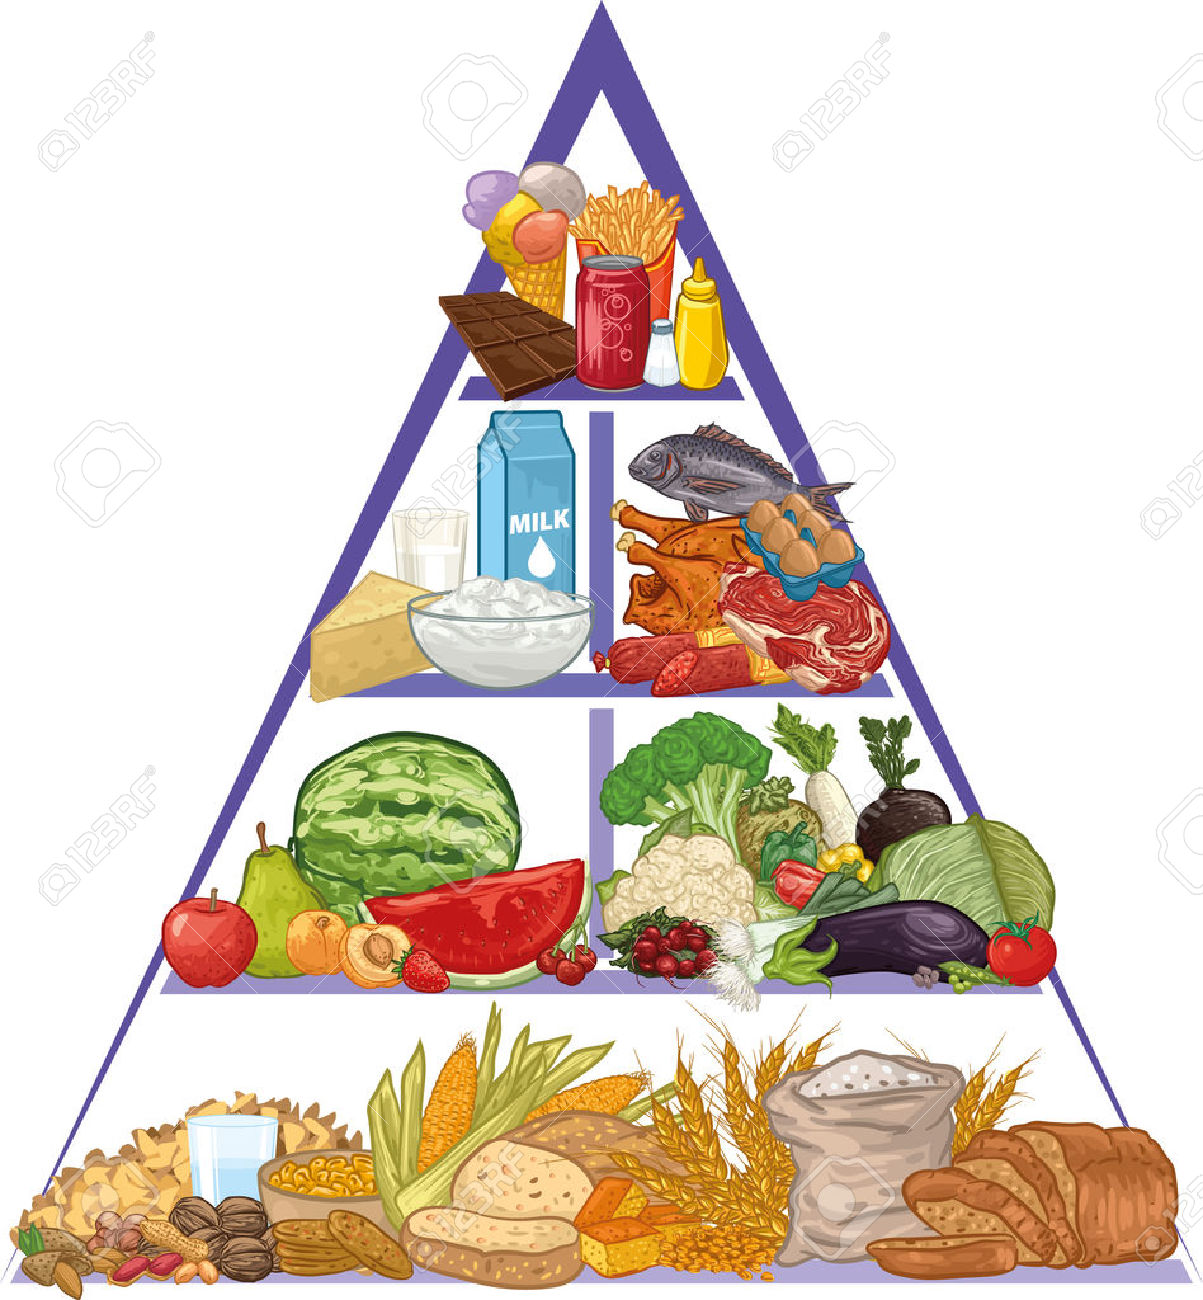 Food Pyramid Stock Photos Images. Royalty Free Food Pyramid Images.